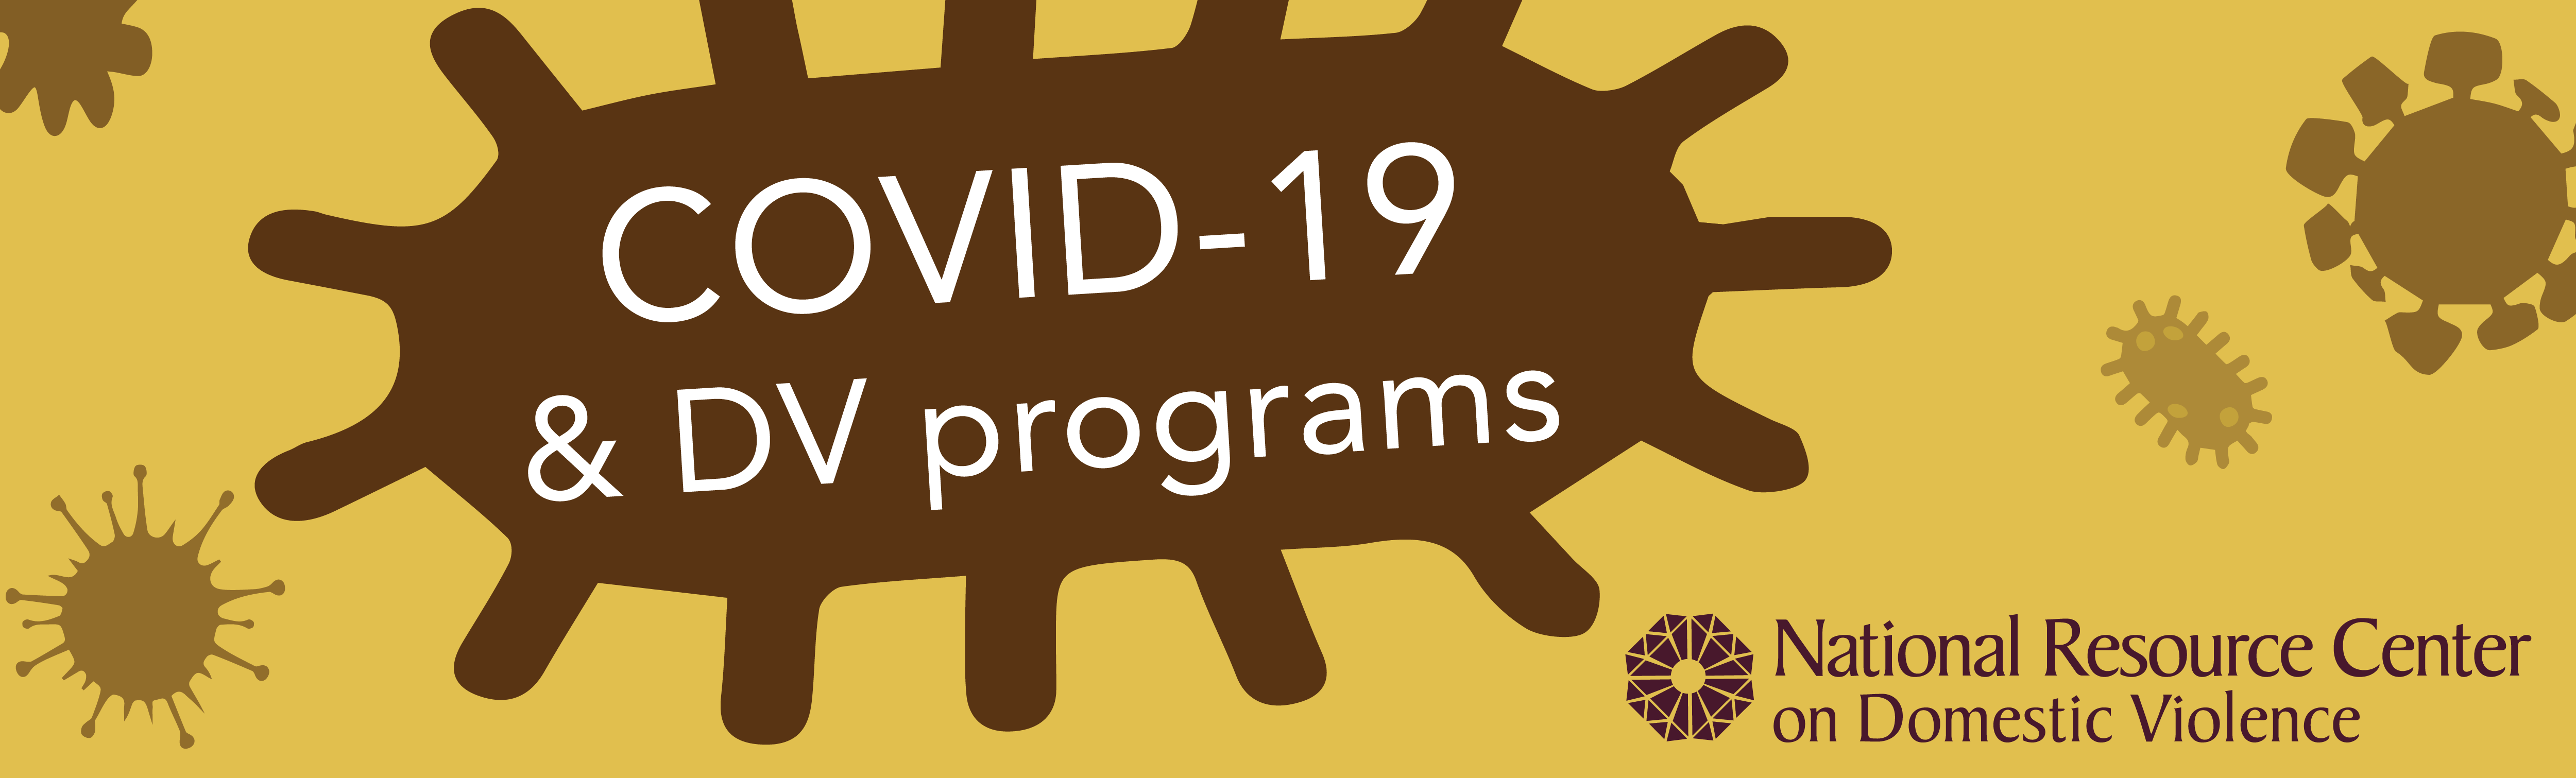 COVID-19 and DV Programs